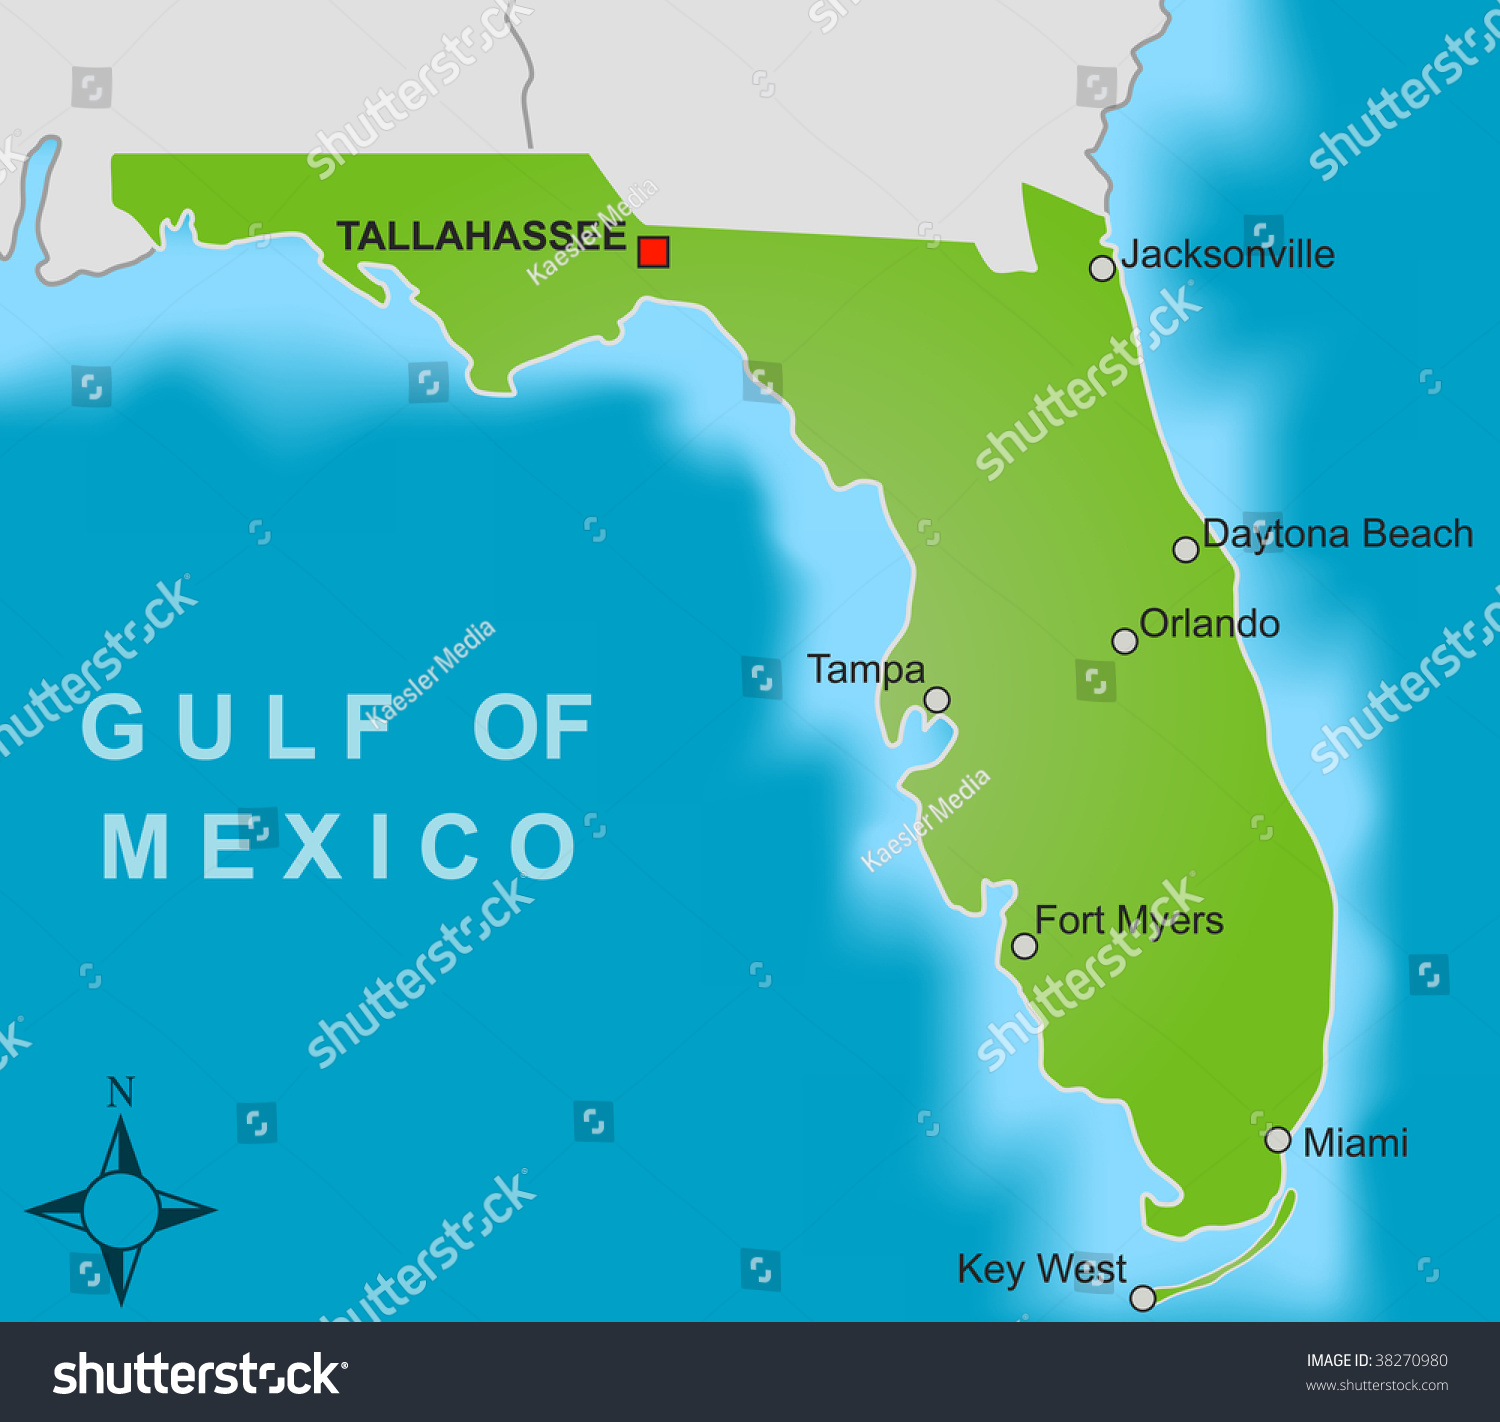 Stylized Map State Florida Showing Different Stock Illustration - Florida map showing cities